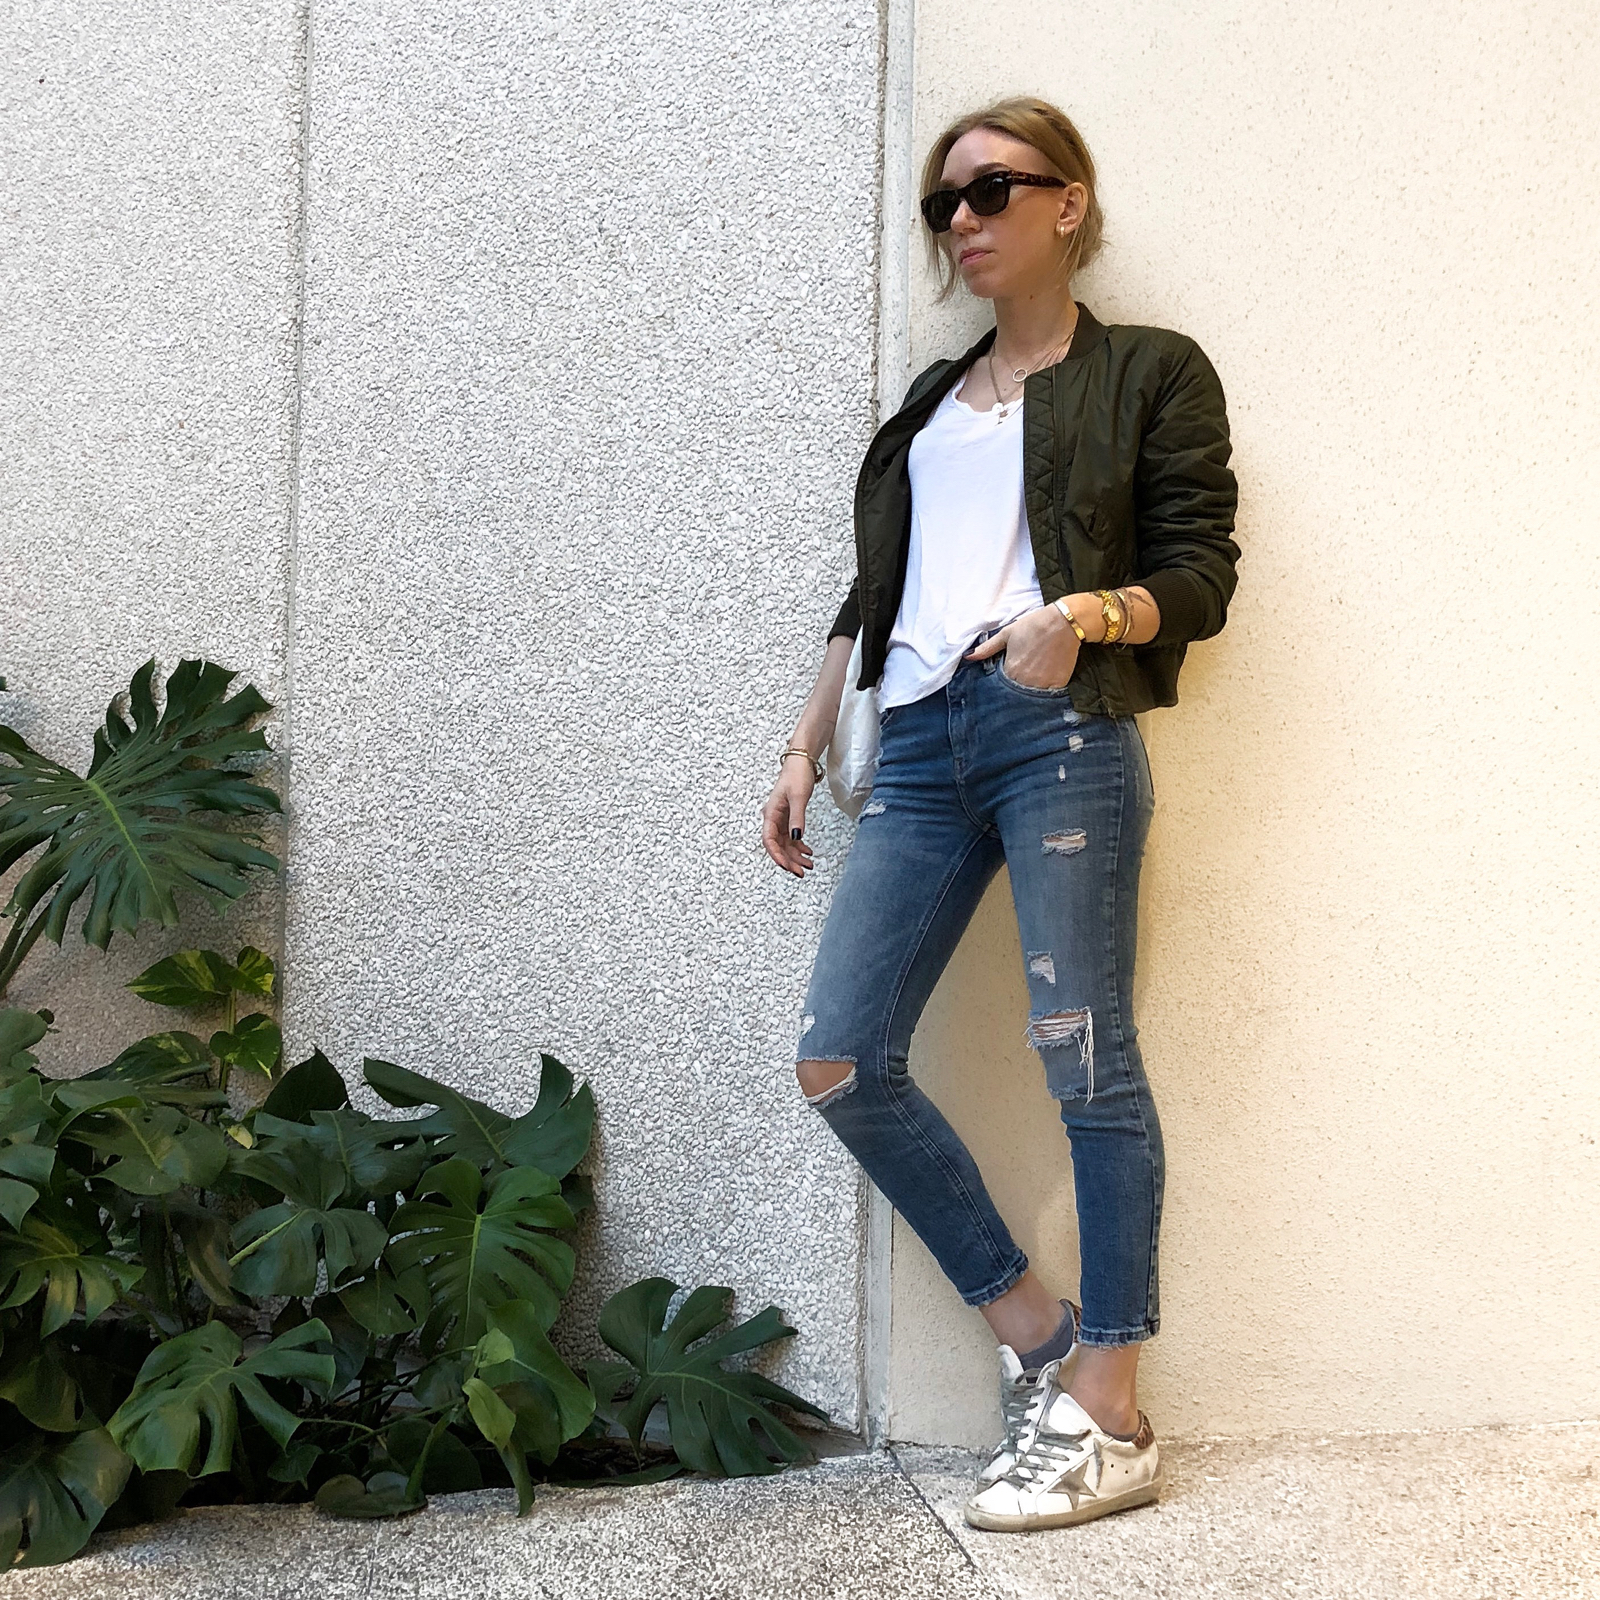 Woman posing in denim and olive jacket against white wall